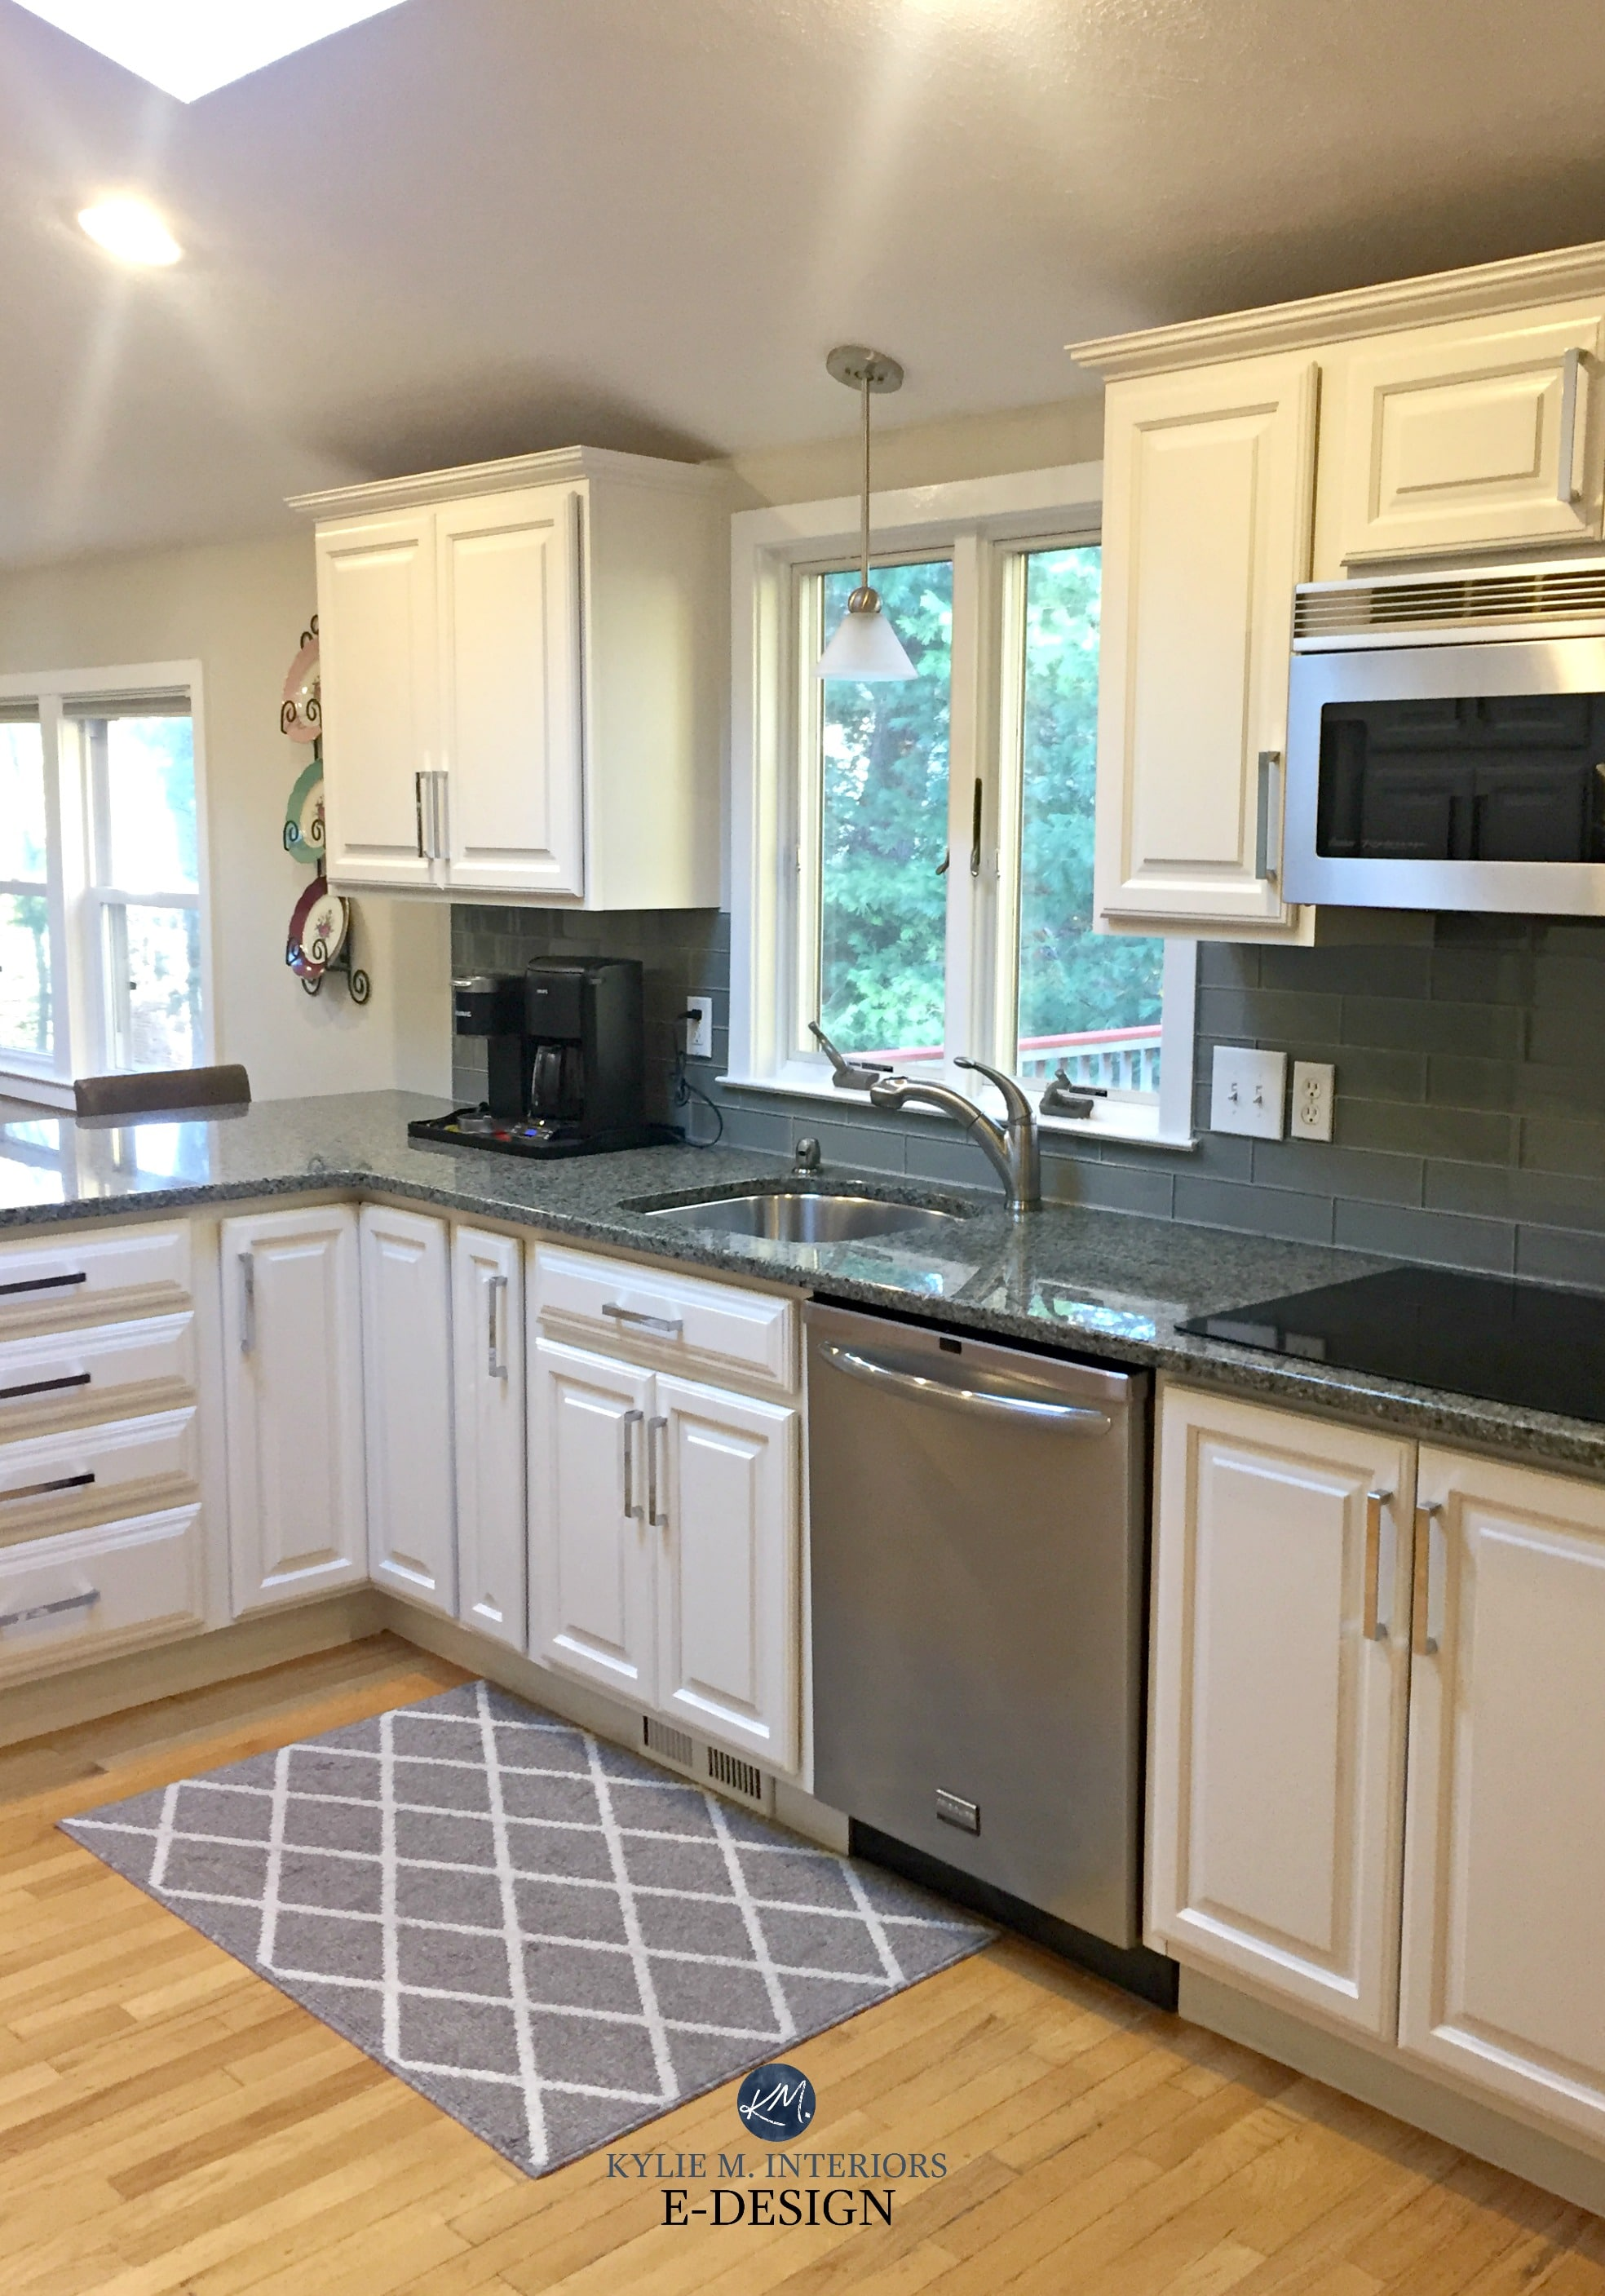 Sherwin Williams White Duck painted maple cabinets and ... on Backsplash For Maple Cabinets And Black Granite  id=36199